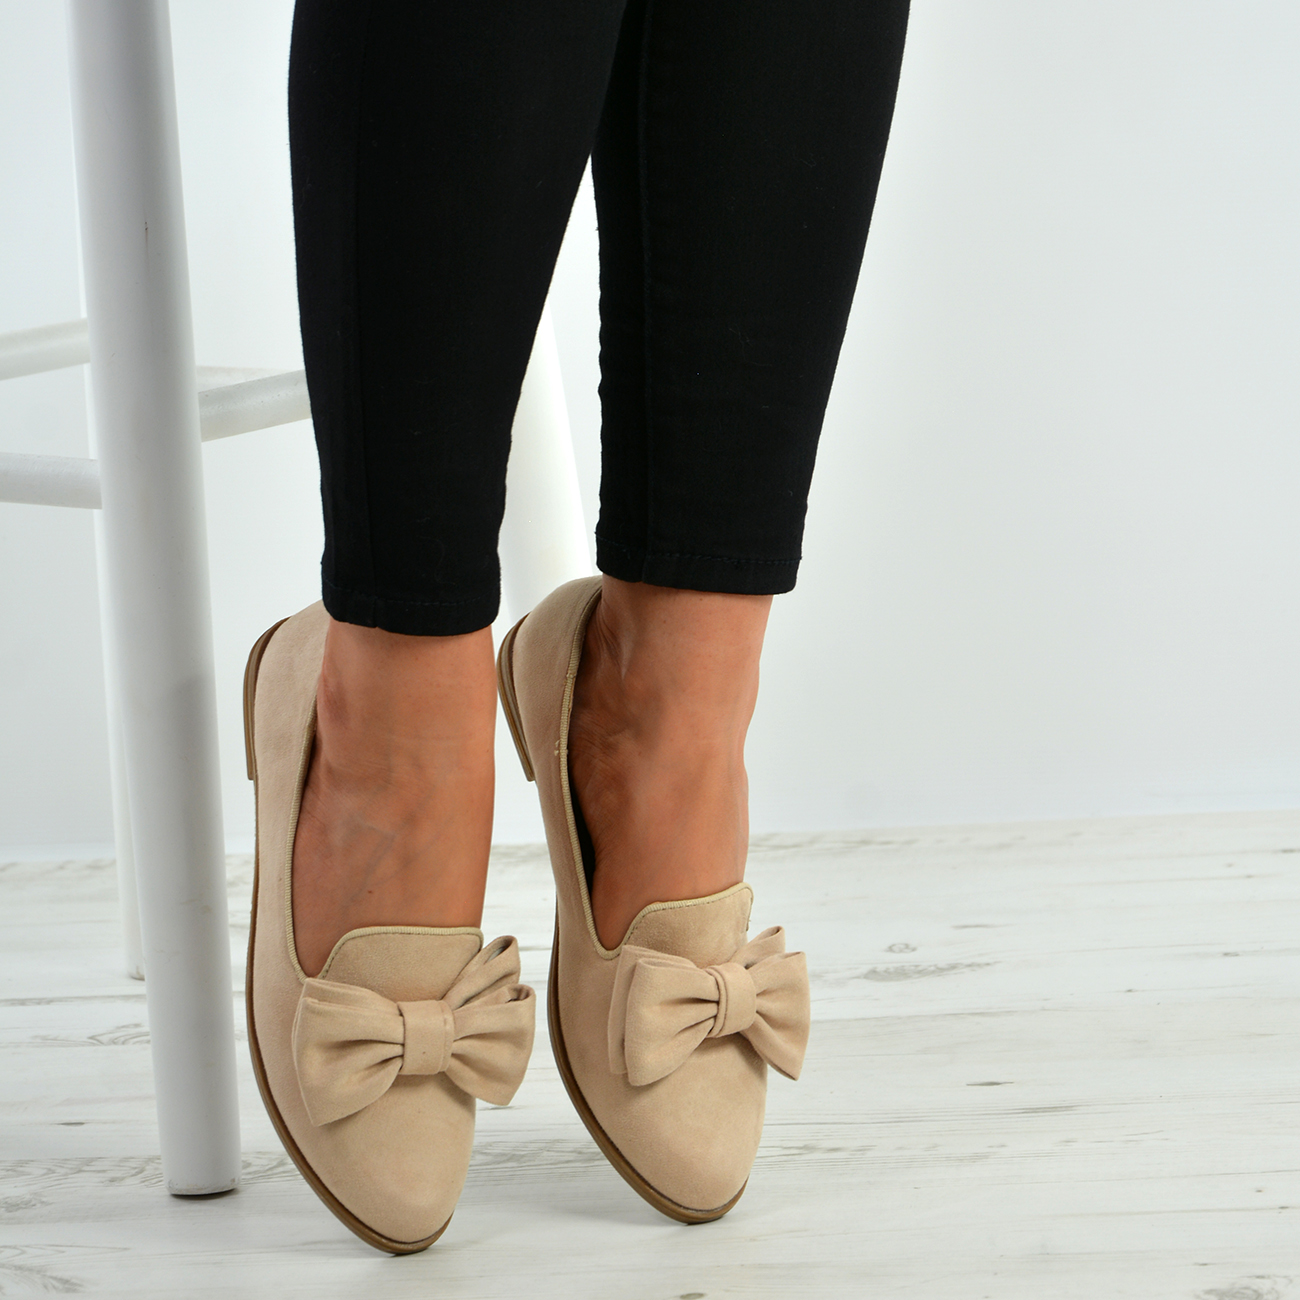 New-Womens-Ladies-Bow-Slip-On-Ballerina-Dolly-Pumps-Ballet-Shoes-Sizes-Uk